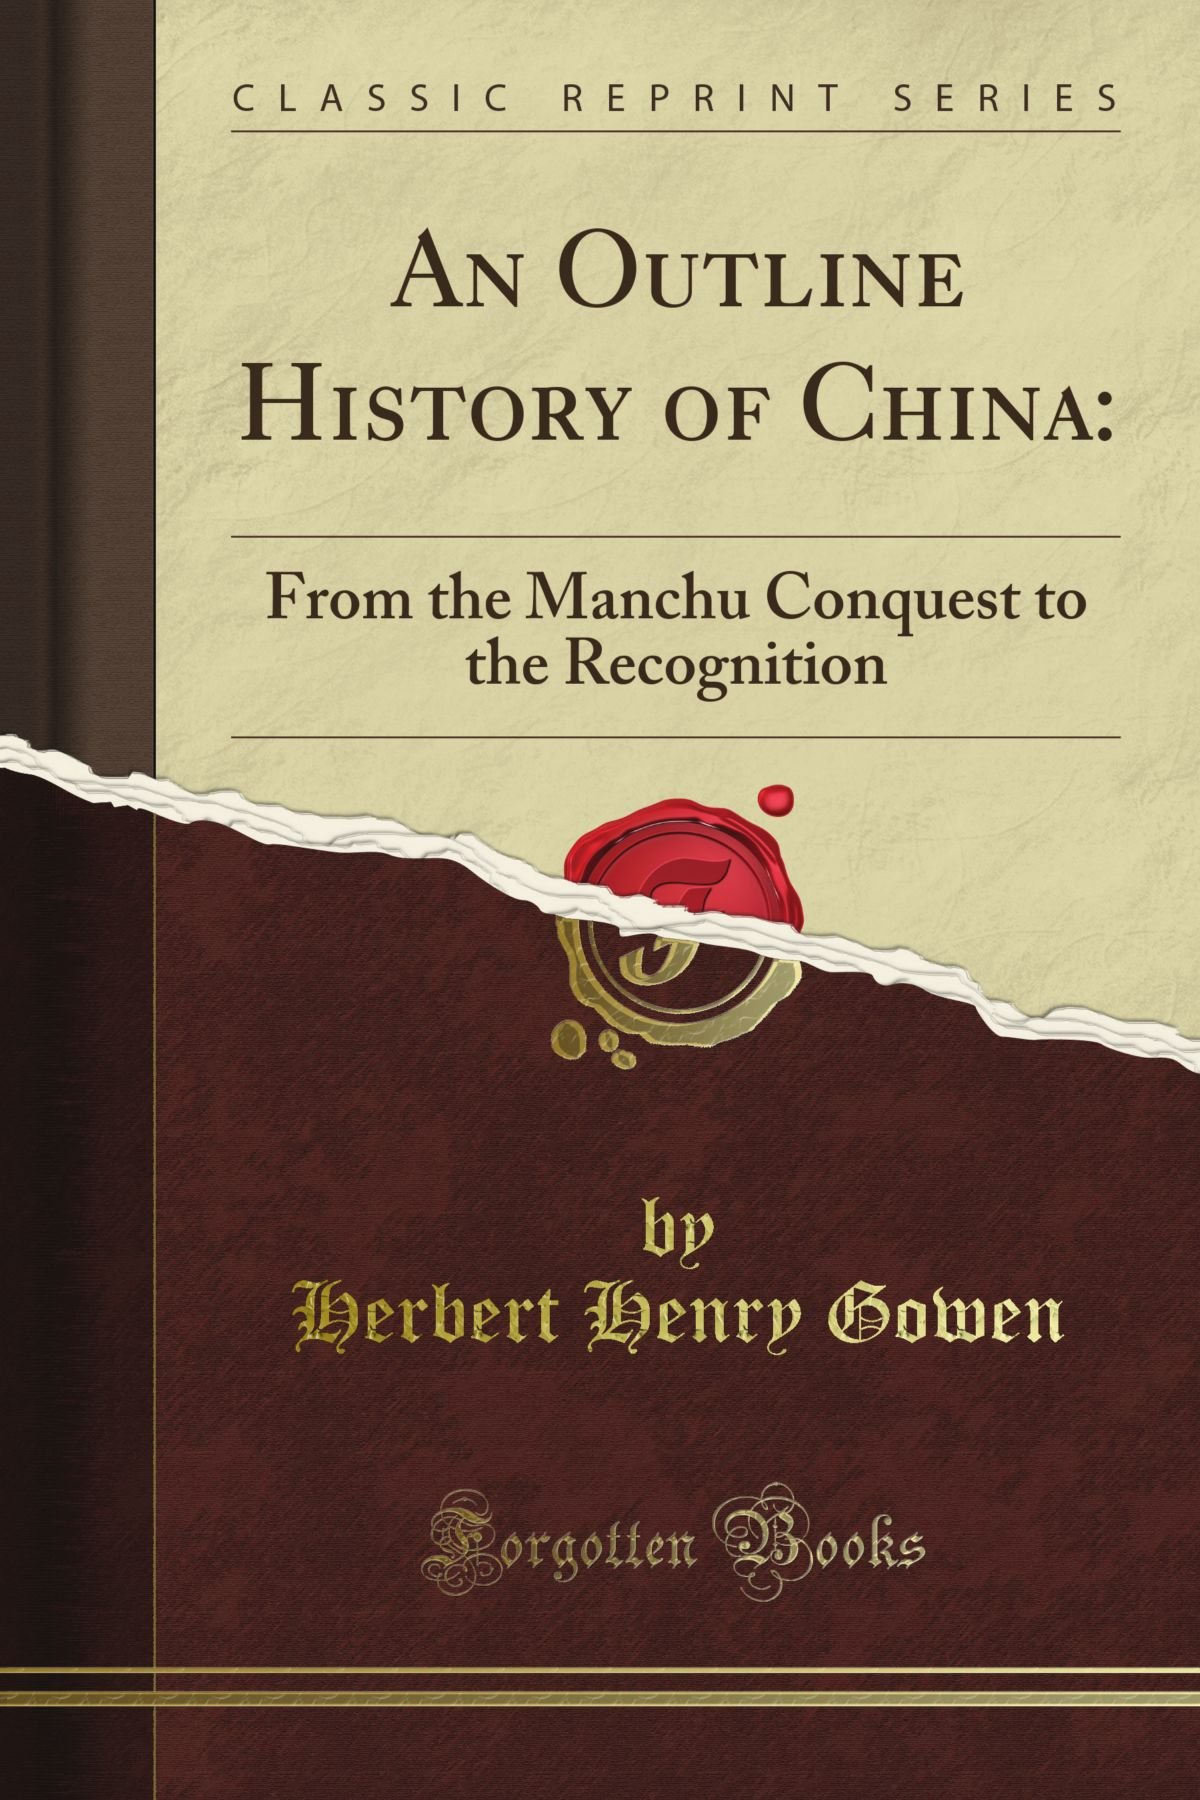 An Outline History of China:: From the Manchu Conquest to the Recognition (Classic Reprint) PDF